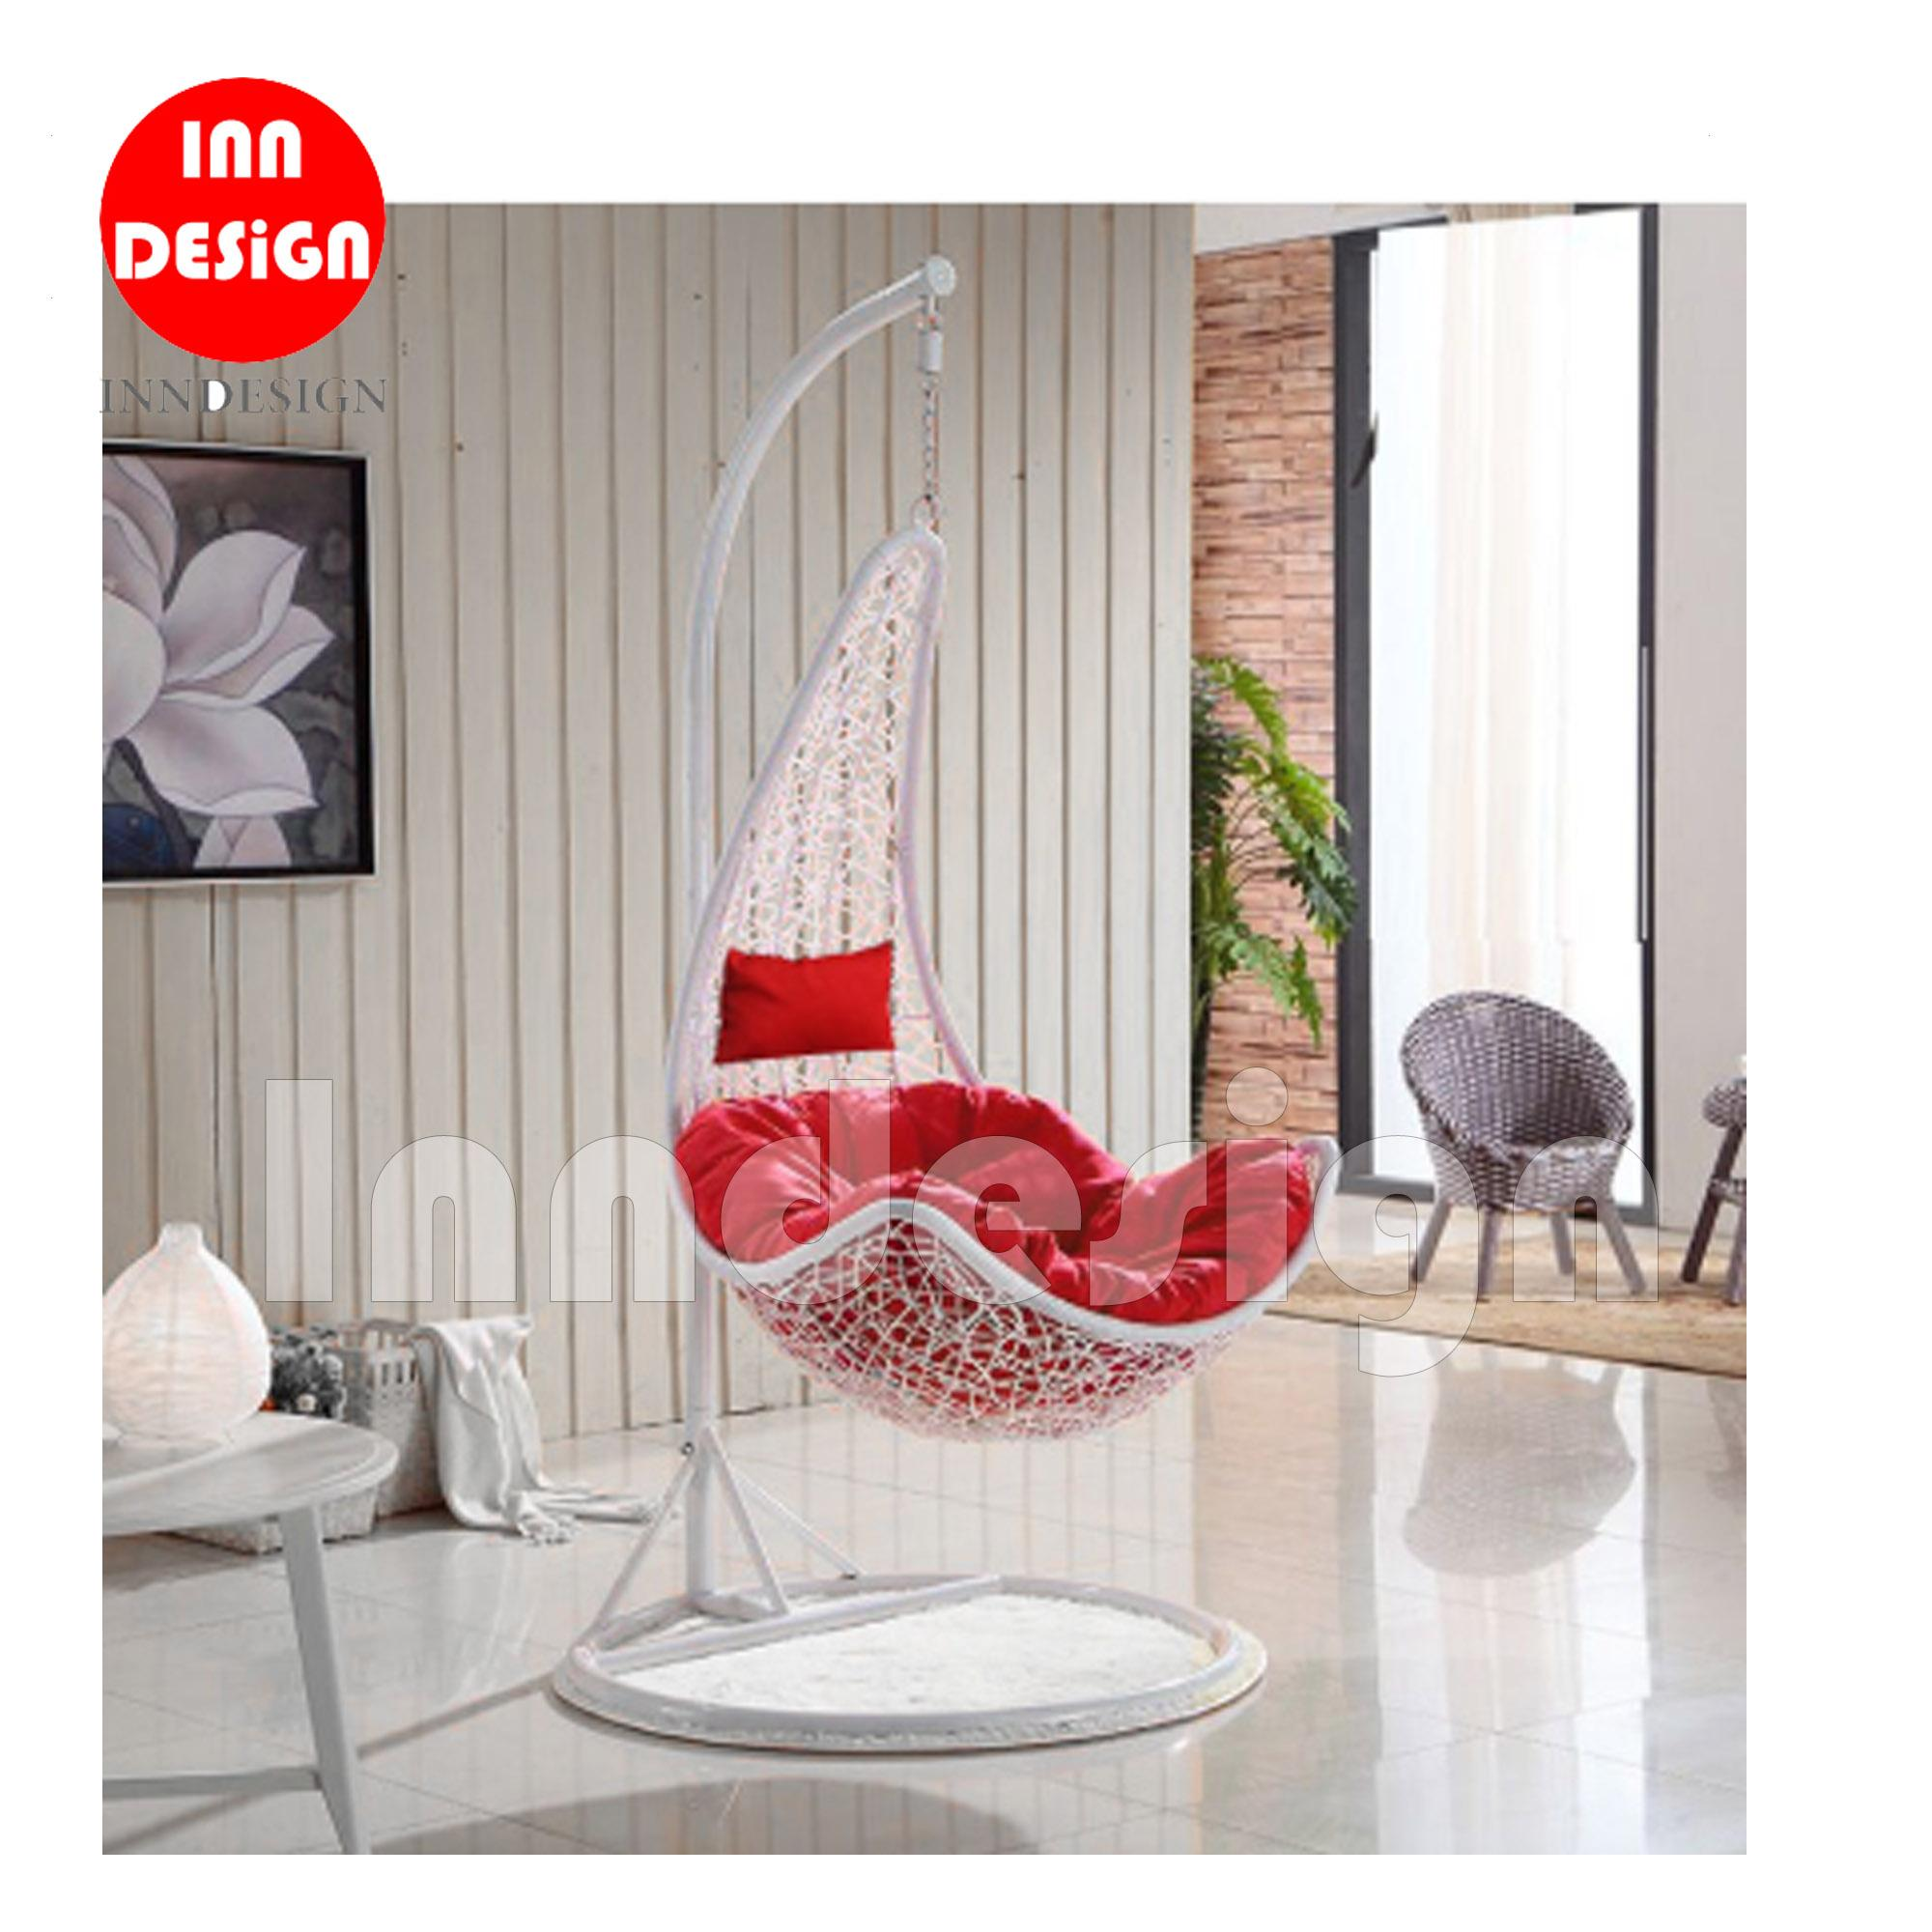 Miki Swing Chair / Lounge Chair / Relax Chair (White + Red)